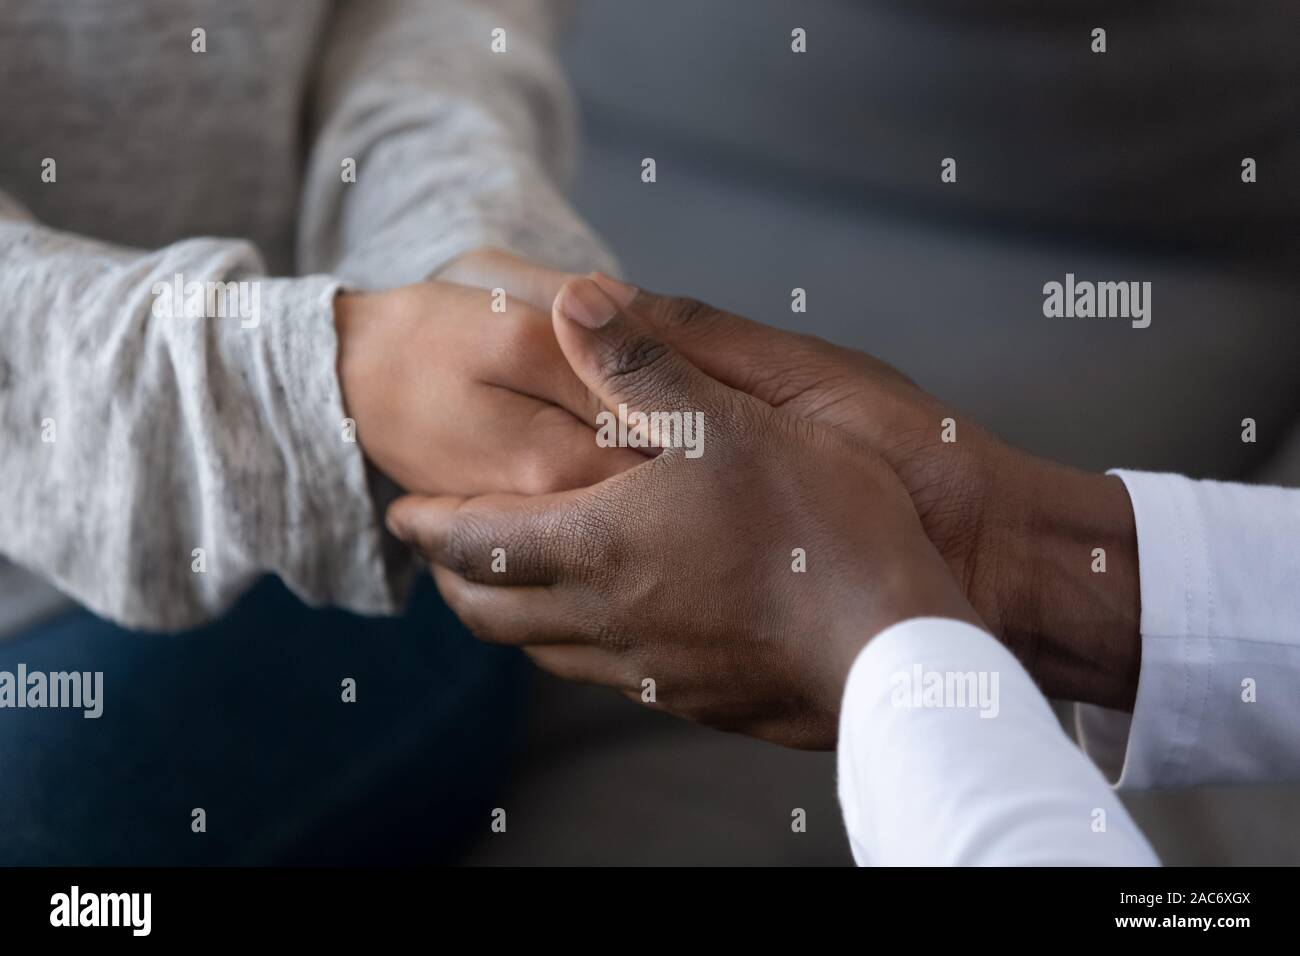 Young african american guy holding hands of woman, giving support. Stock Photo